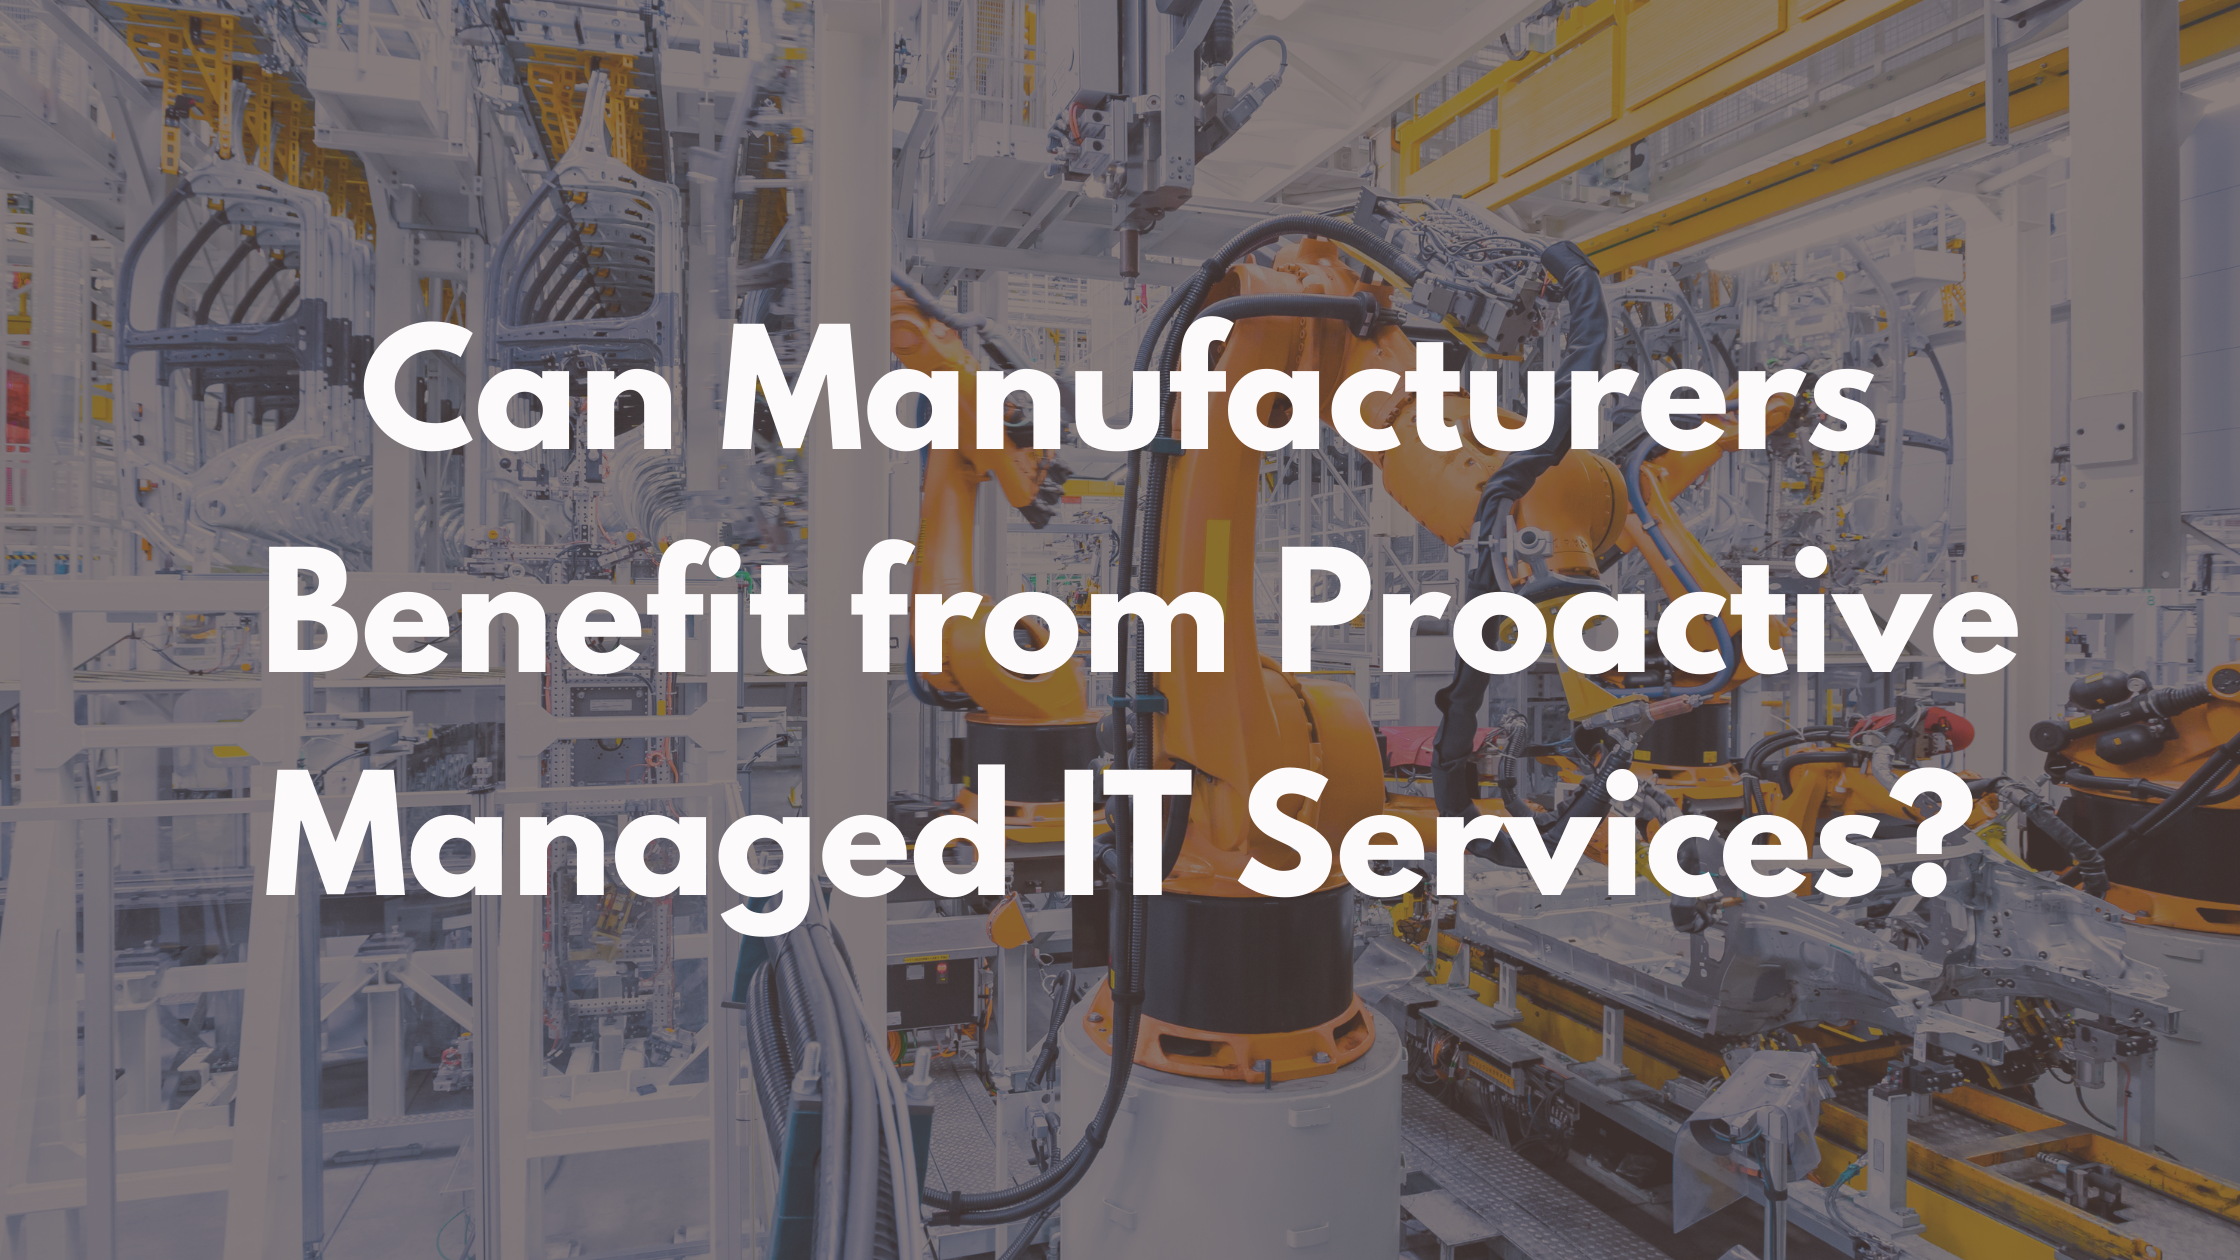 Can Manufacturers Benefit from Proactive Managed IT Services?